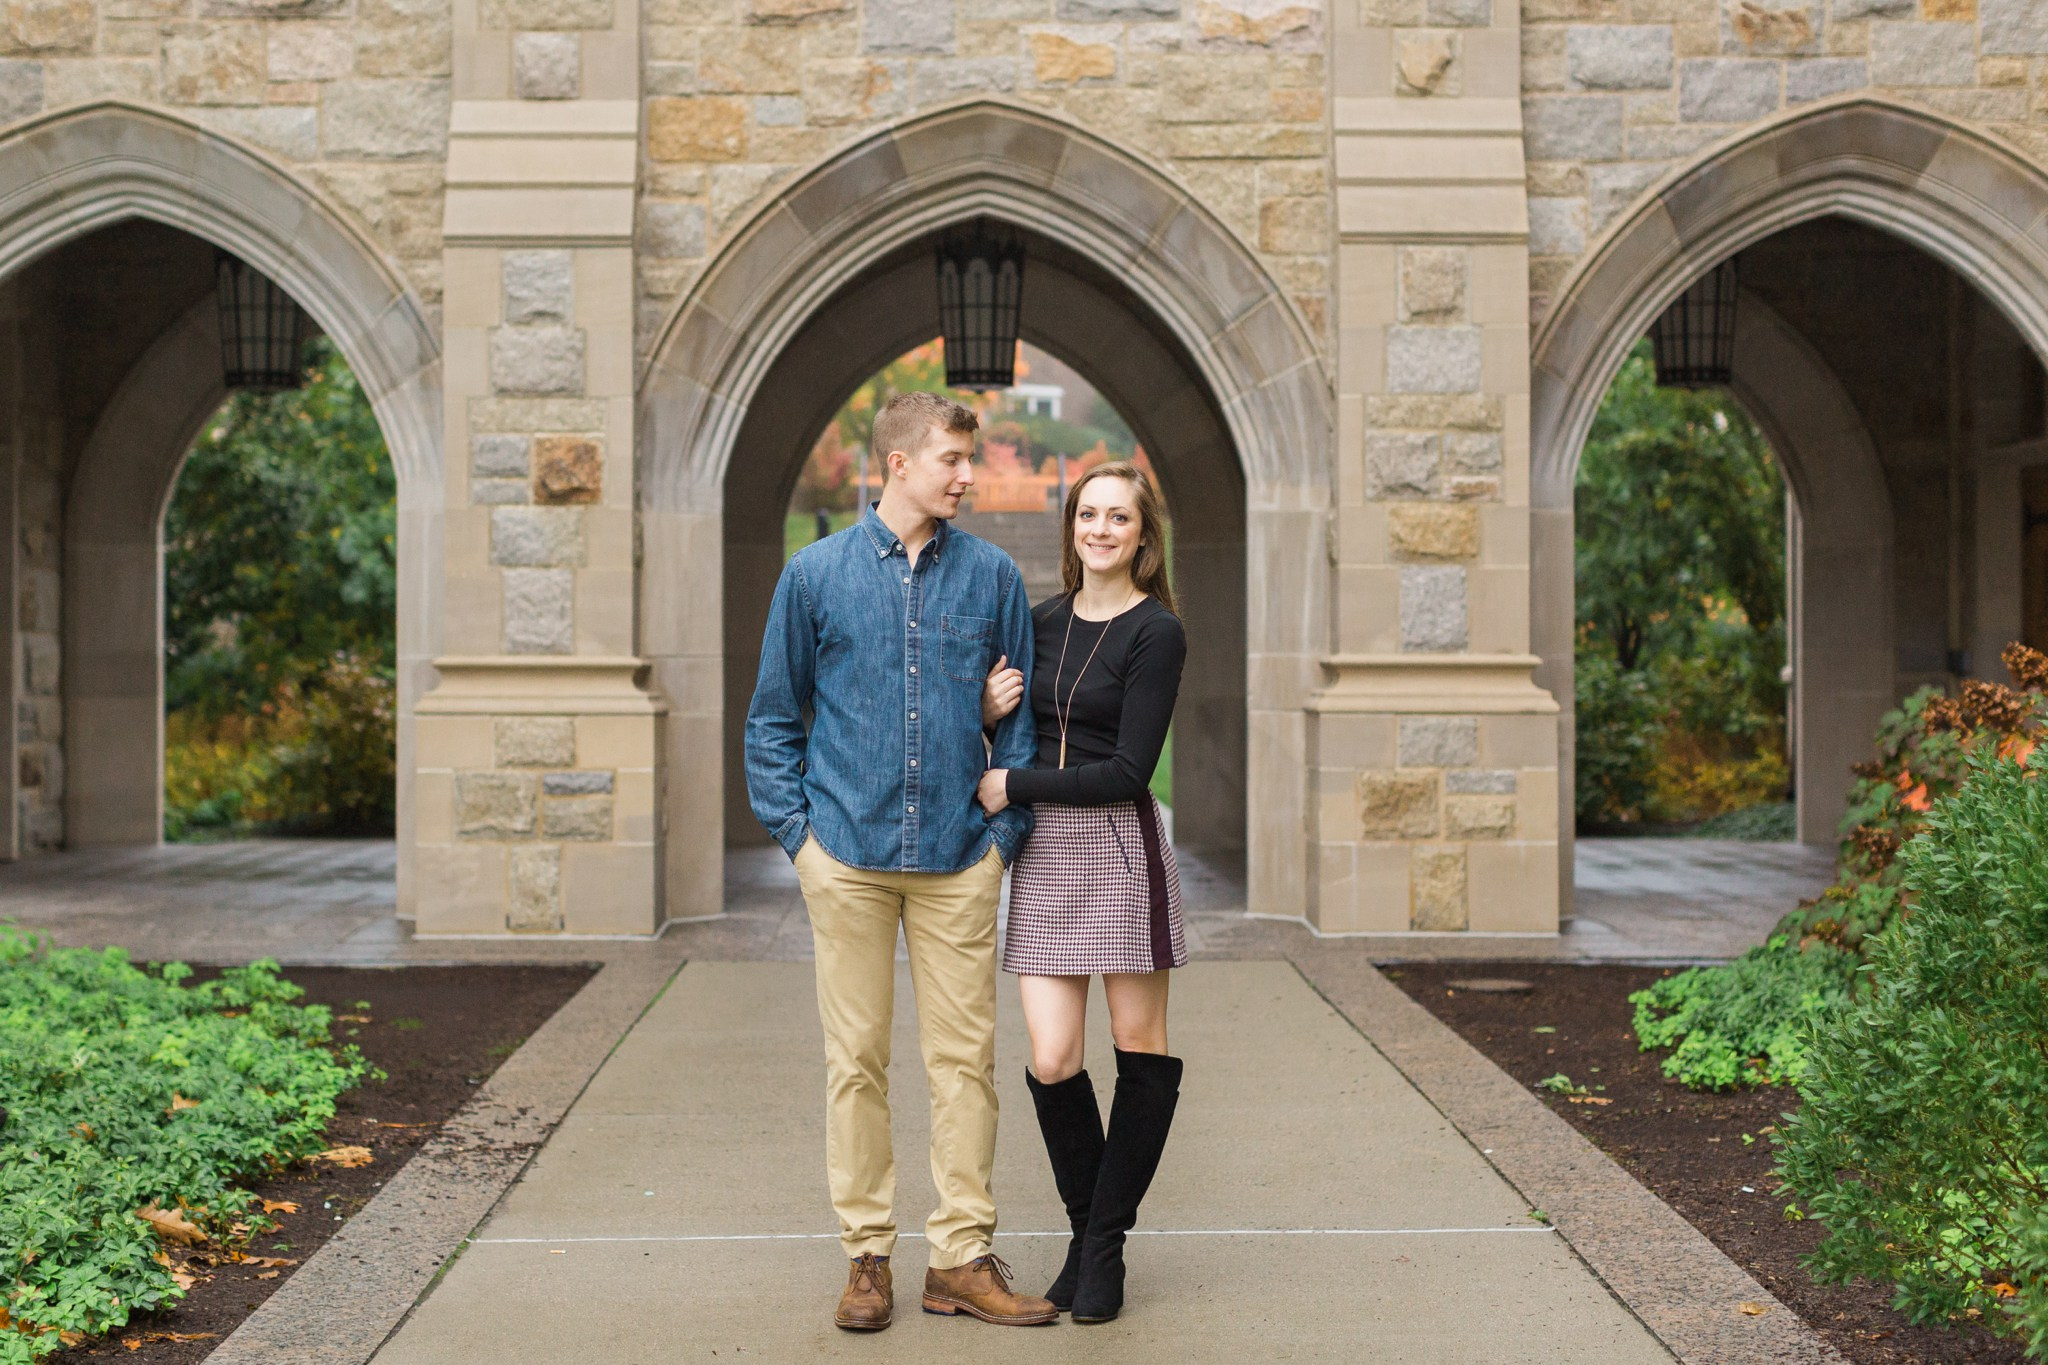 boston_college_engagement_session_00013.JPG